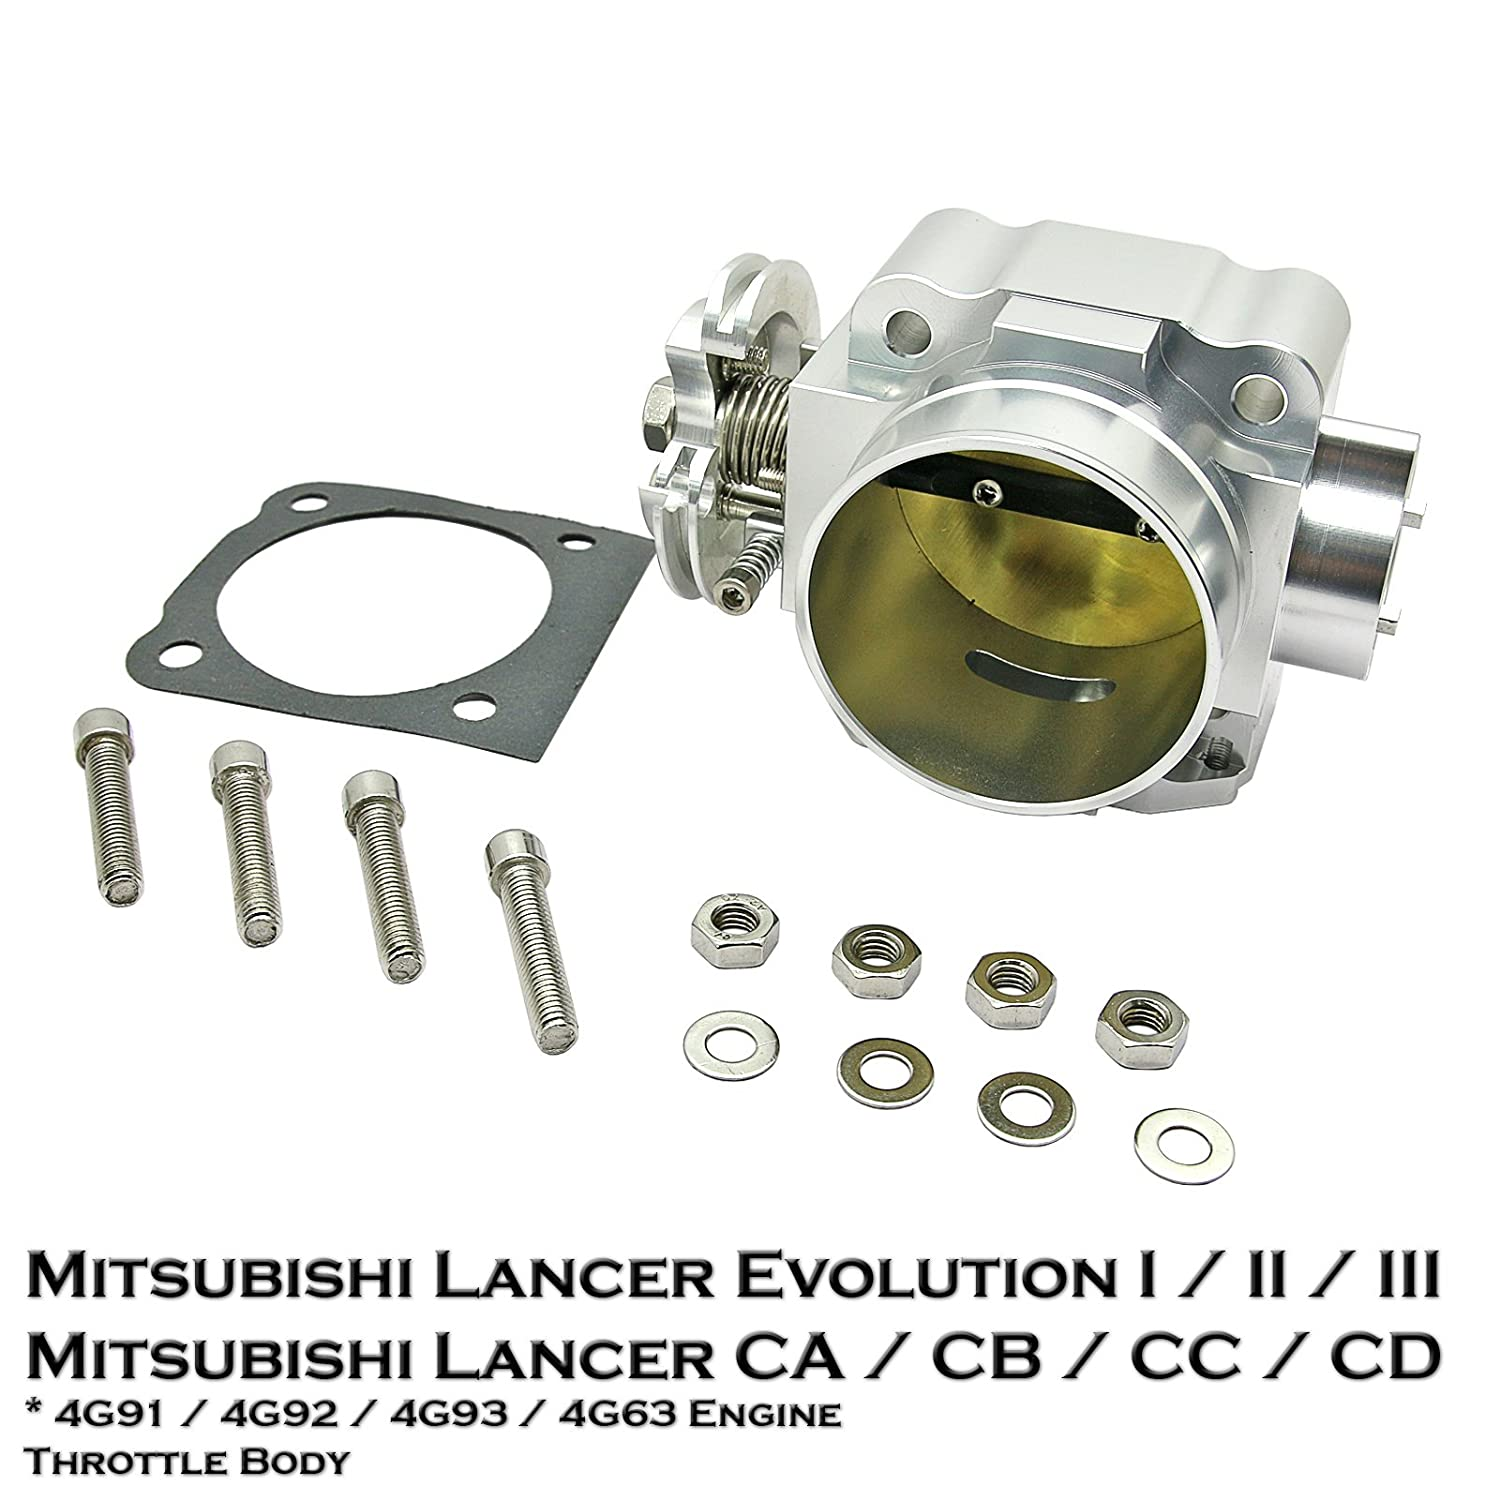 Amazon.com: 70mm Aluminium Throttle Body Fit Mitsubishi Lancer Evolution 1  2 3 Lancer Mirage CA3A CA4A CA5A CB3A CB4A CB5A CC3A CC4A CD3A CD5A 4G91  4G92 ...